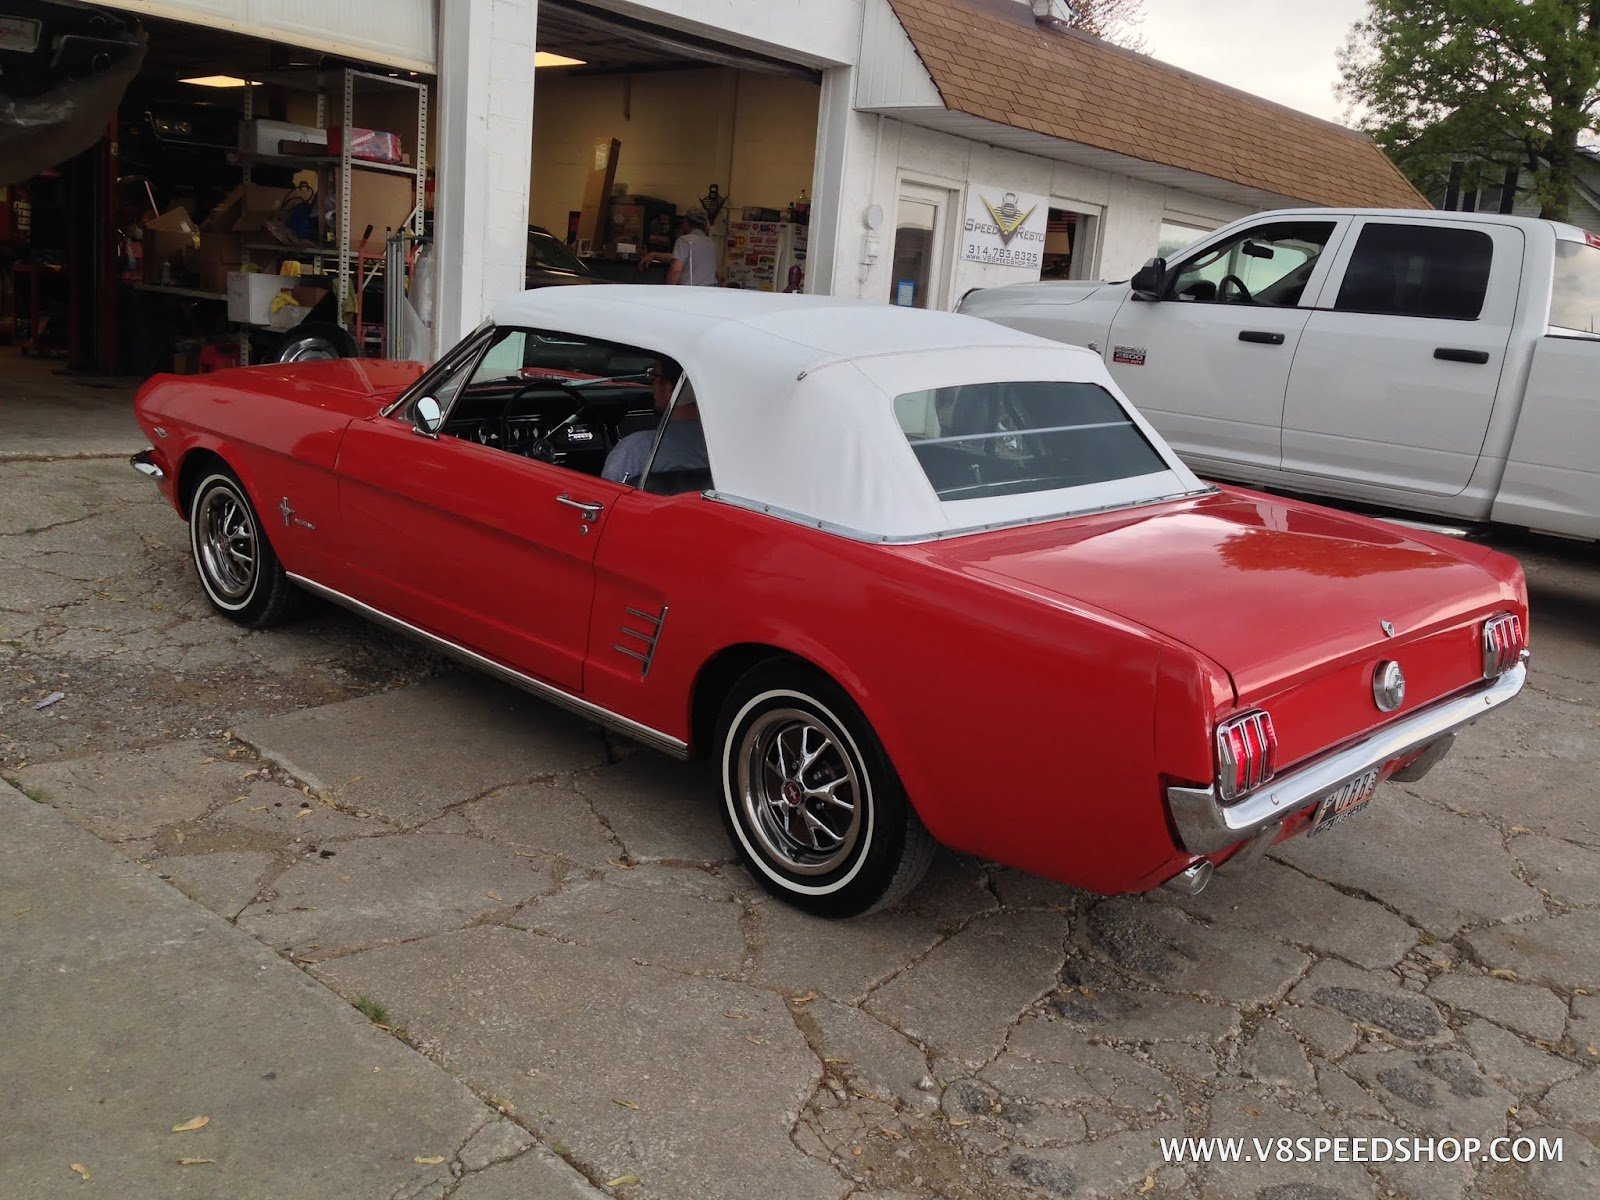 1966 Mustang After